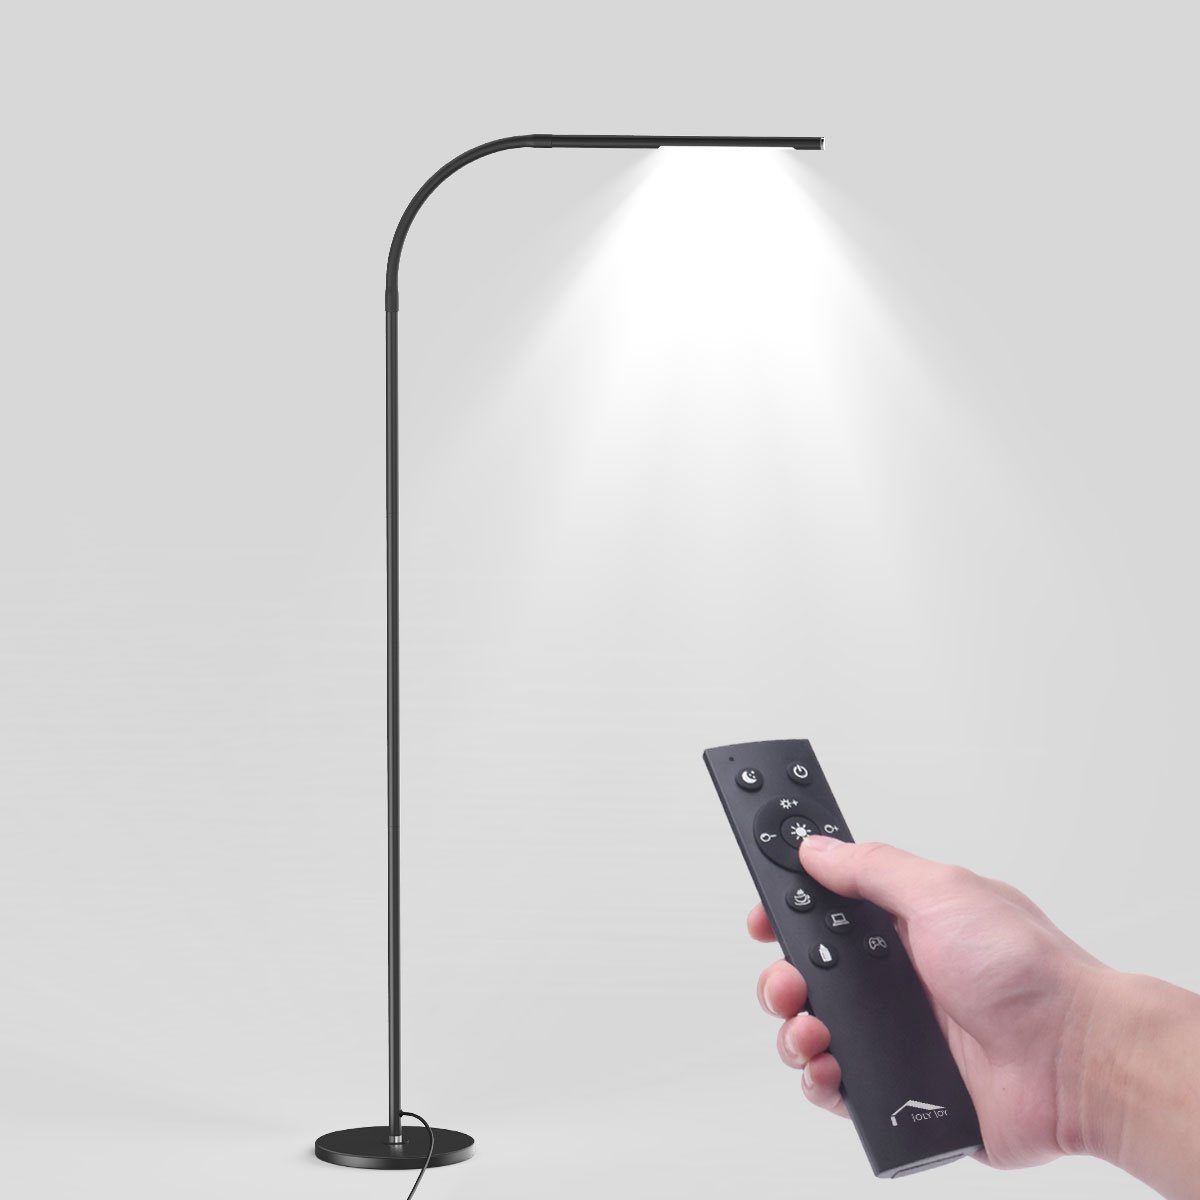 Joly Joy LED Modern Floor Lamps, Flexible Gooseneck Standing Reading Light W/Stable Base, 4 Color & 5 Brightness Dimmer, Touch & Remote Control, for Living Room, Chair, Couch, Office Task (Black) by JOLY JOY